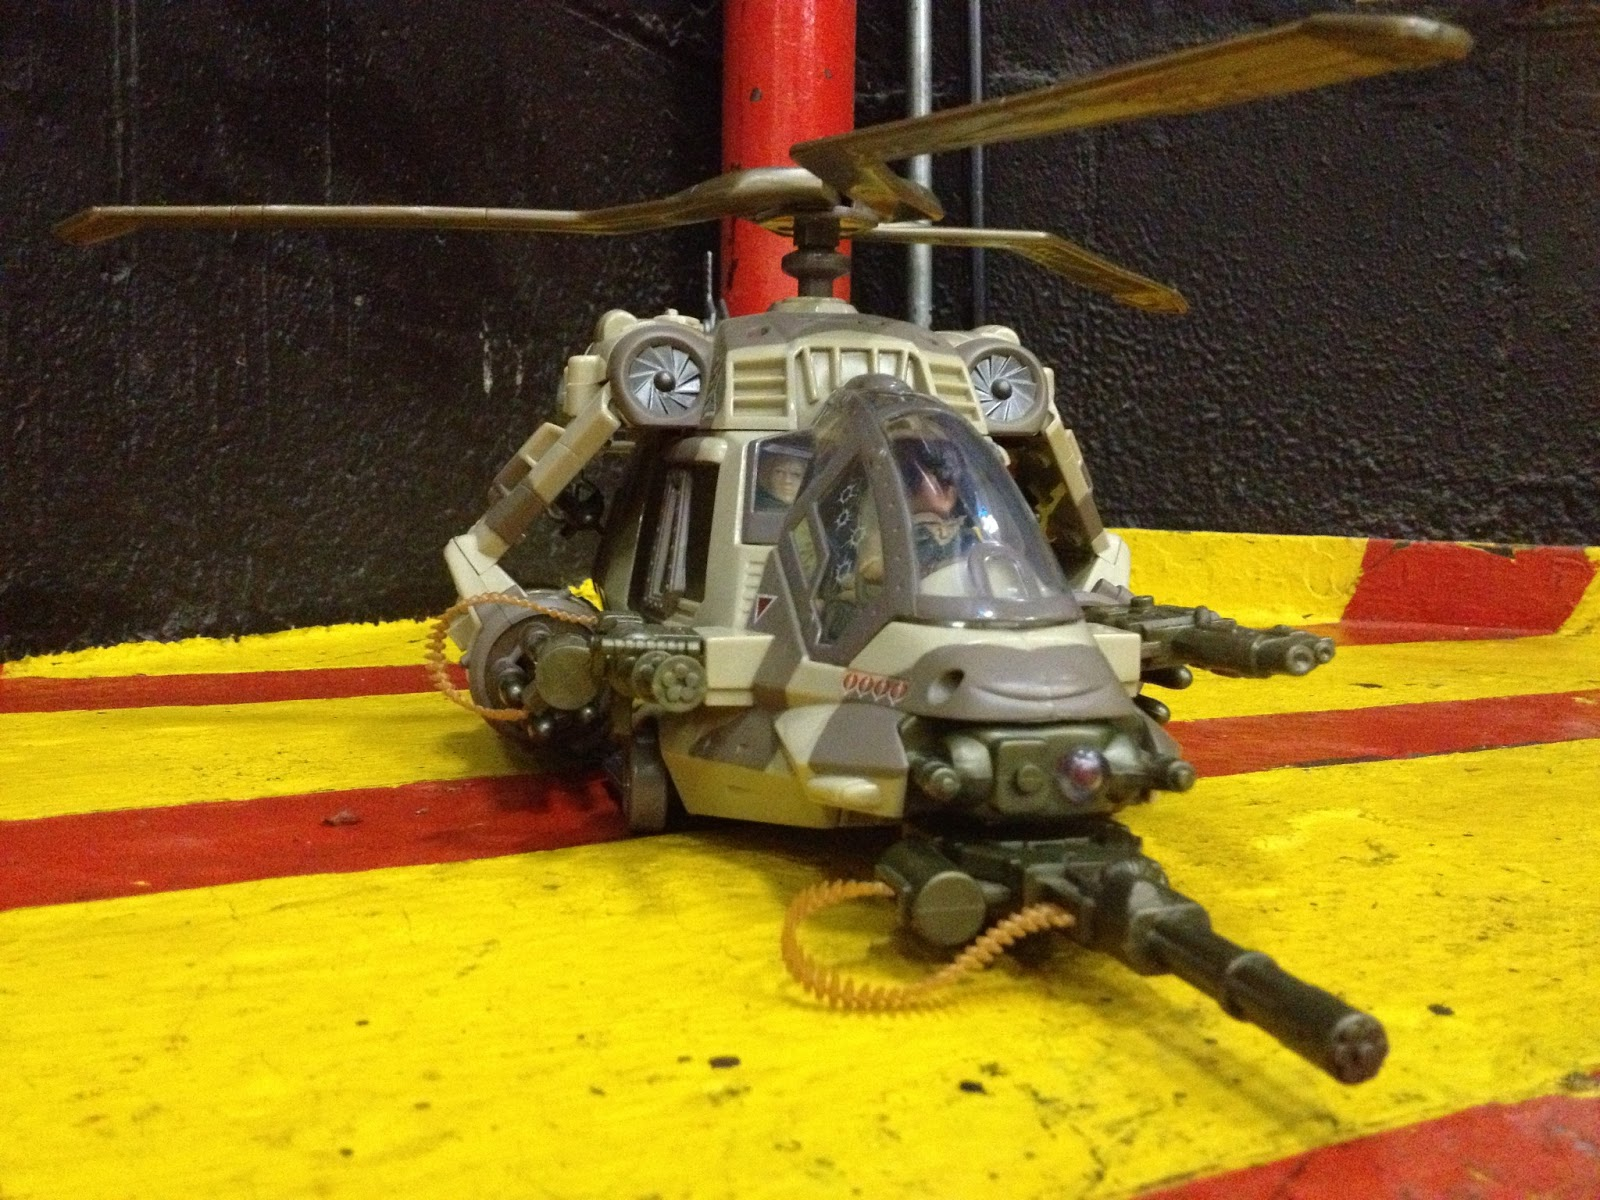 Gi joe 1983 Accessoires Hélicoptère Dragonfly Helicopter Accessory missiles